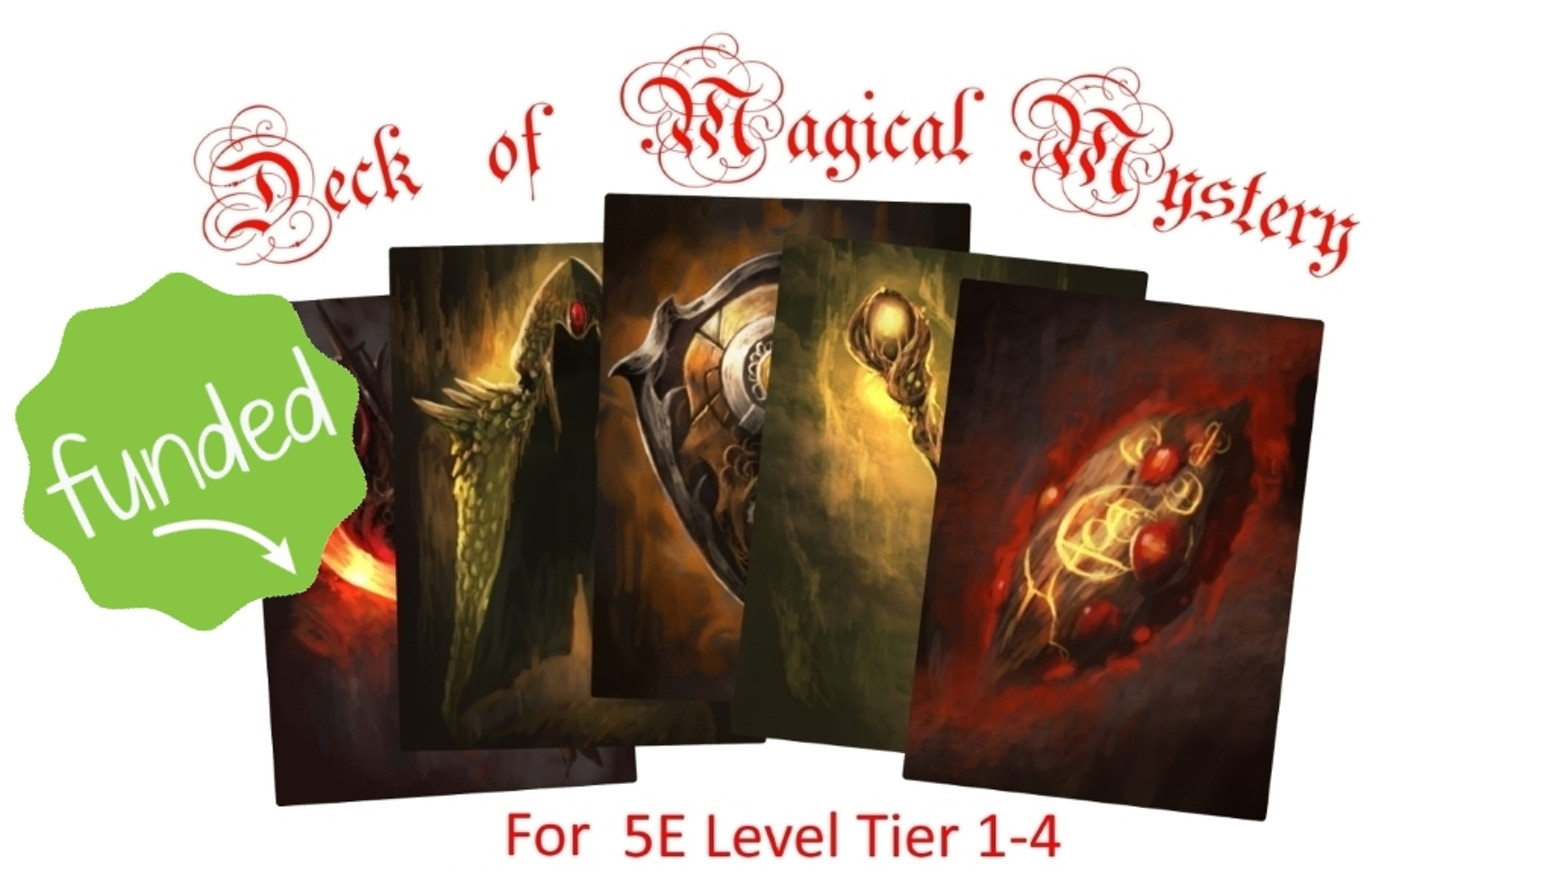 A complete 54 card deck of Unique Random Magic Item Cards for D&D 5E (or other fantasy RPG's) for apprentice-level characters tier 1-4